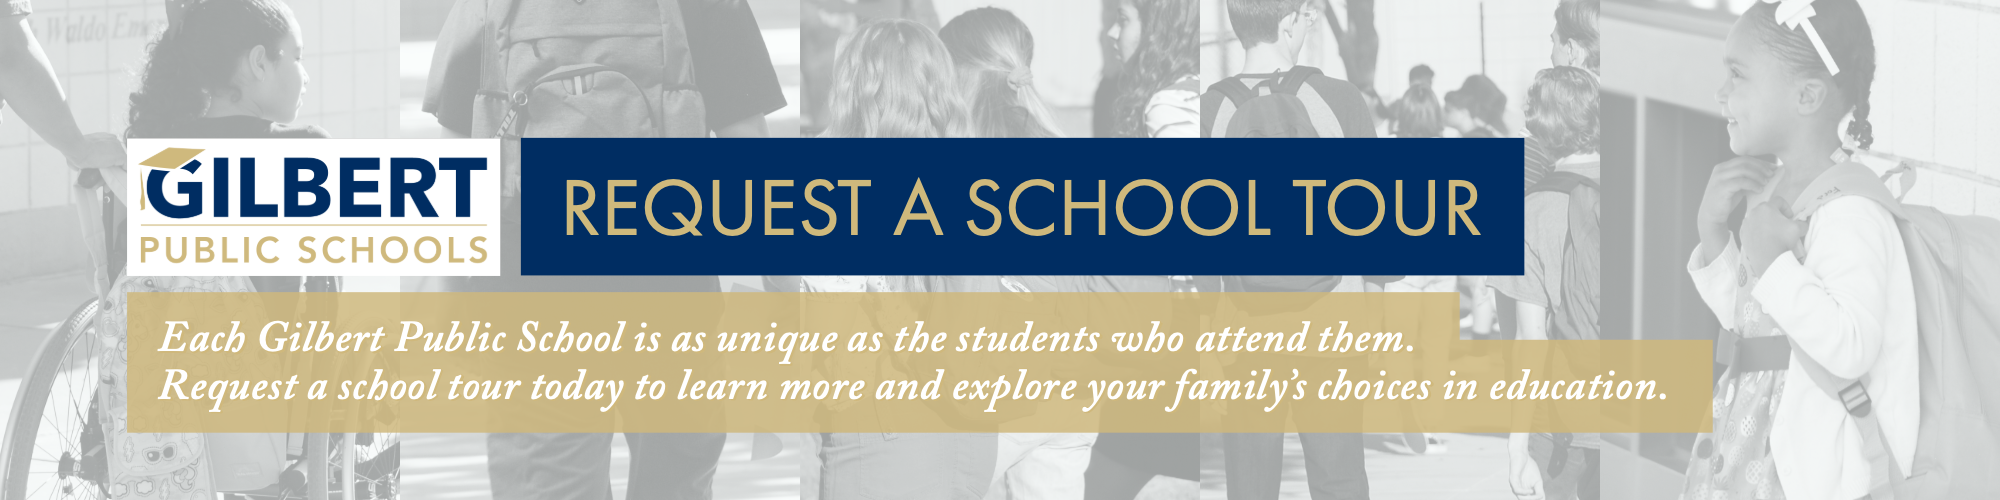 Request a School Tour at Gilbert Public Schools